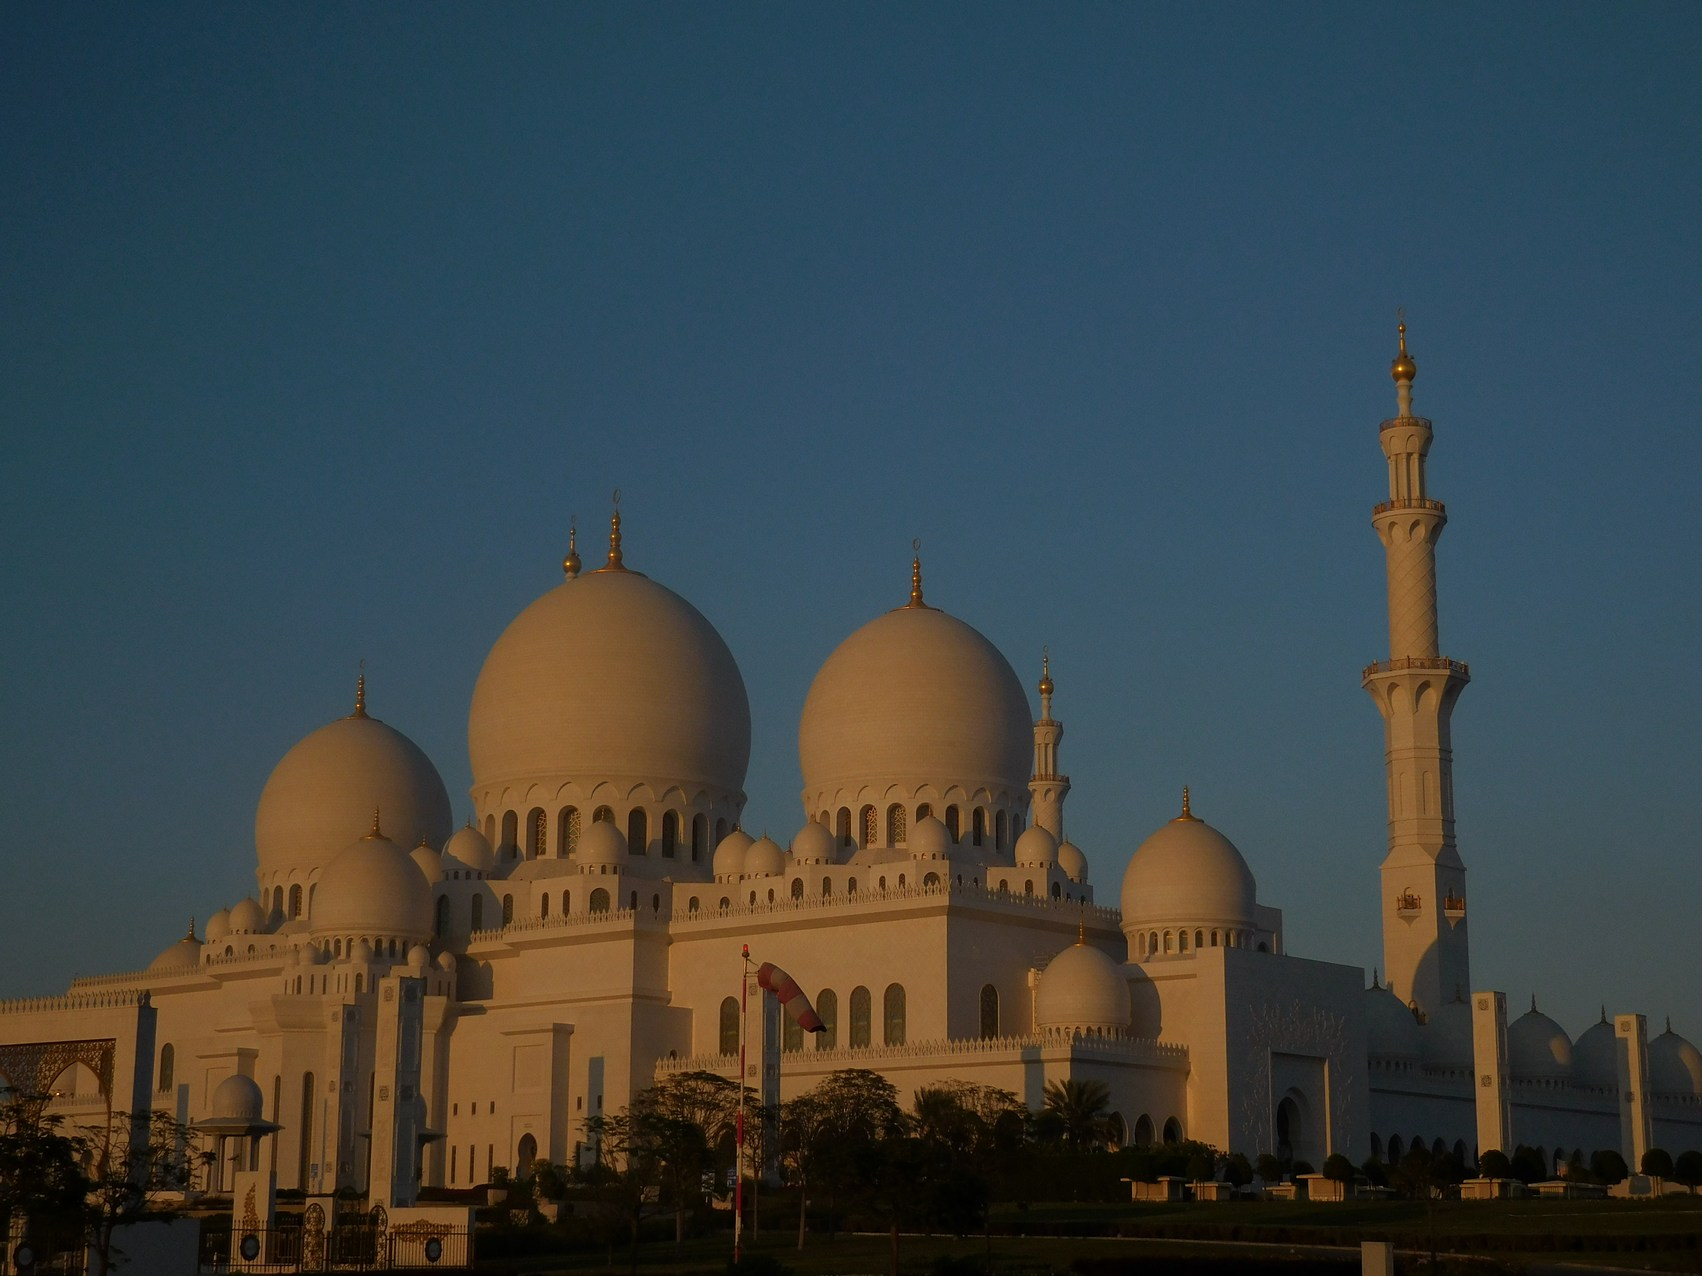 Sheikh Zayed Grand Mosque, Abu Dhabi, UAE, Featured Image, Dusk, Outside